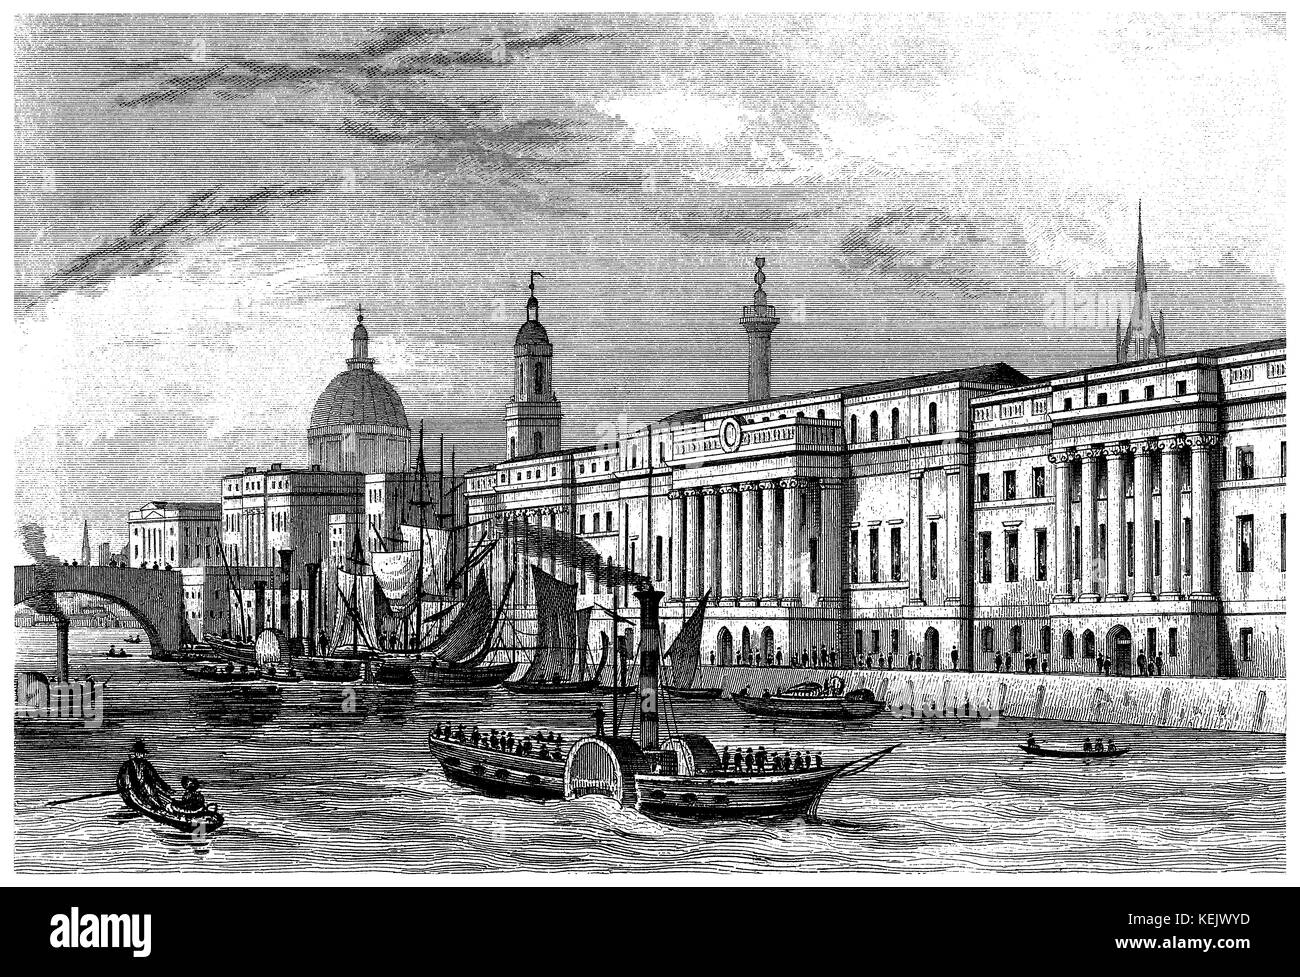 1853 engraving of Custom House on the River Thames in the city of London. - Stock Image